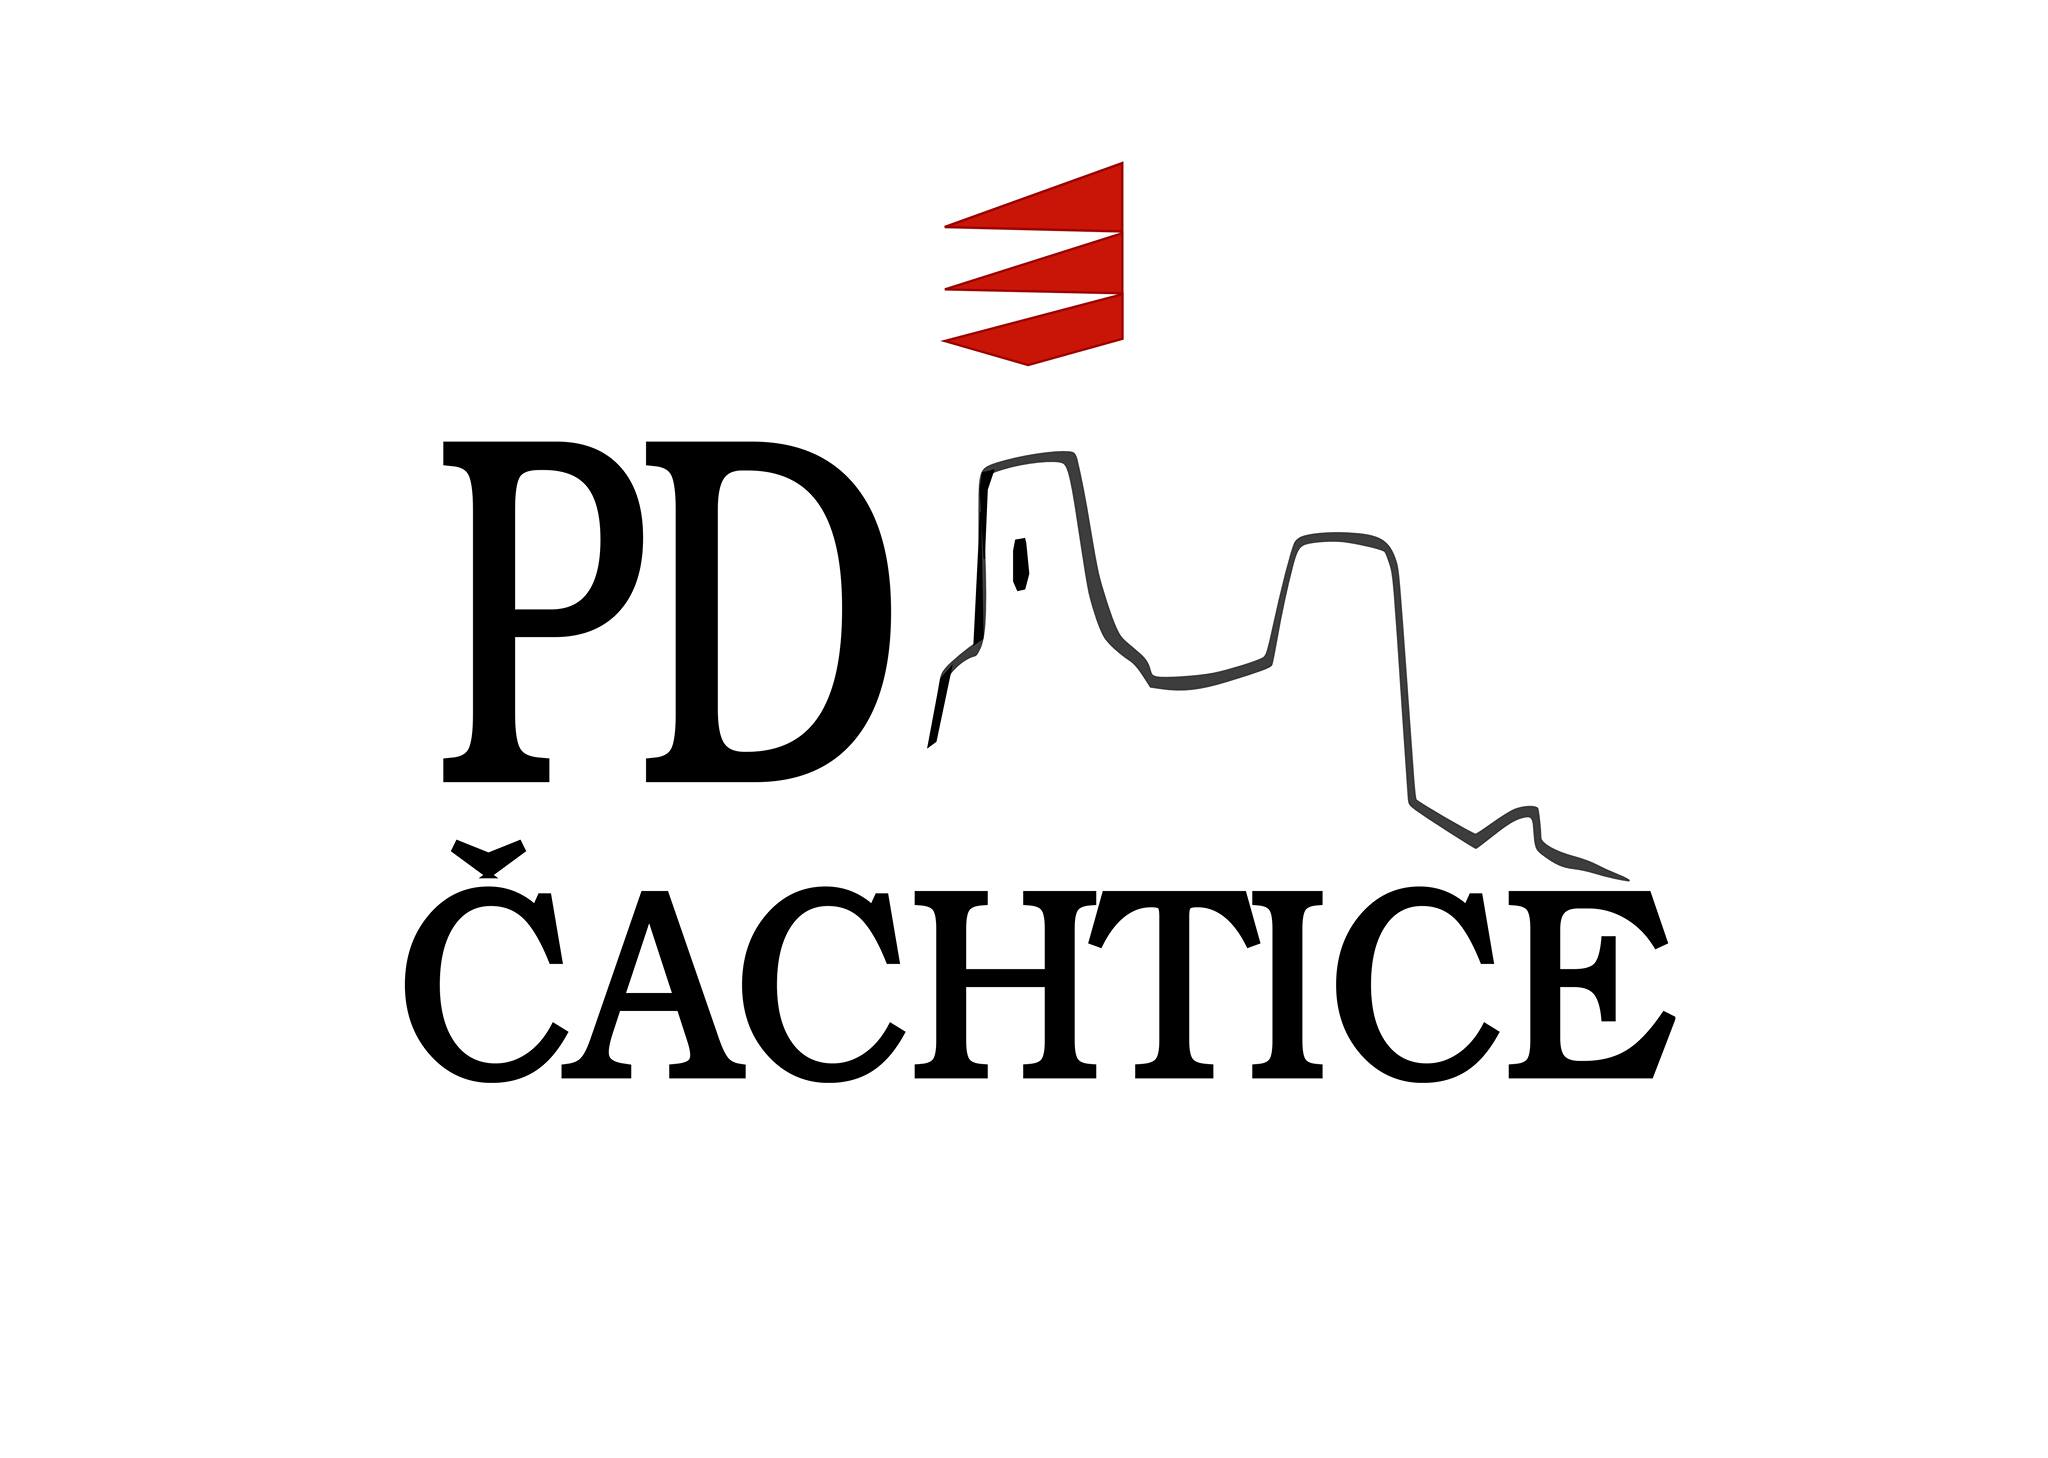 pd_cachtice_cachticke_chotare_logo